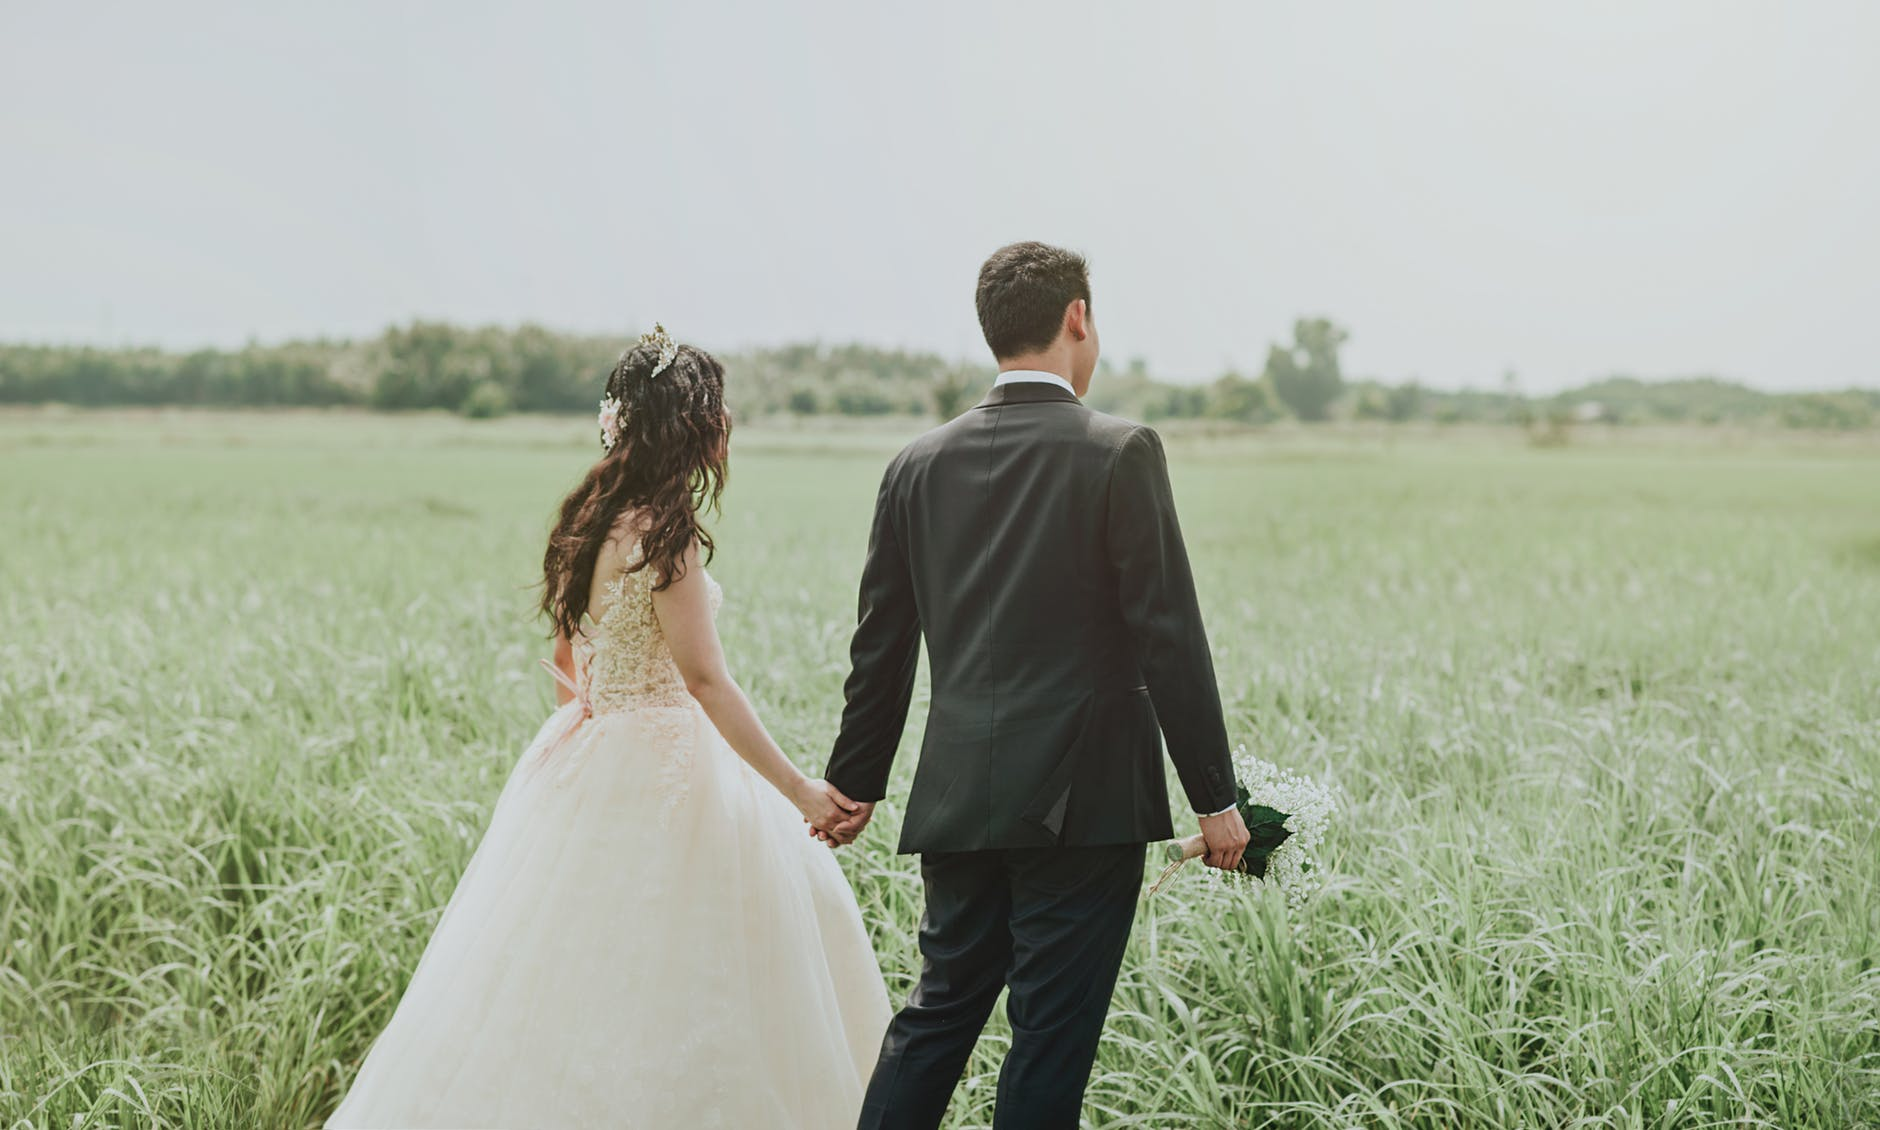 Planning a Fair and Sustainable Wedding